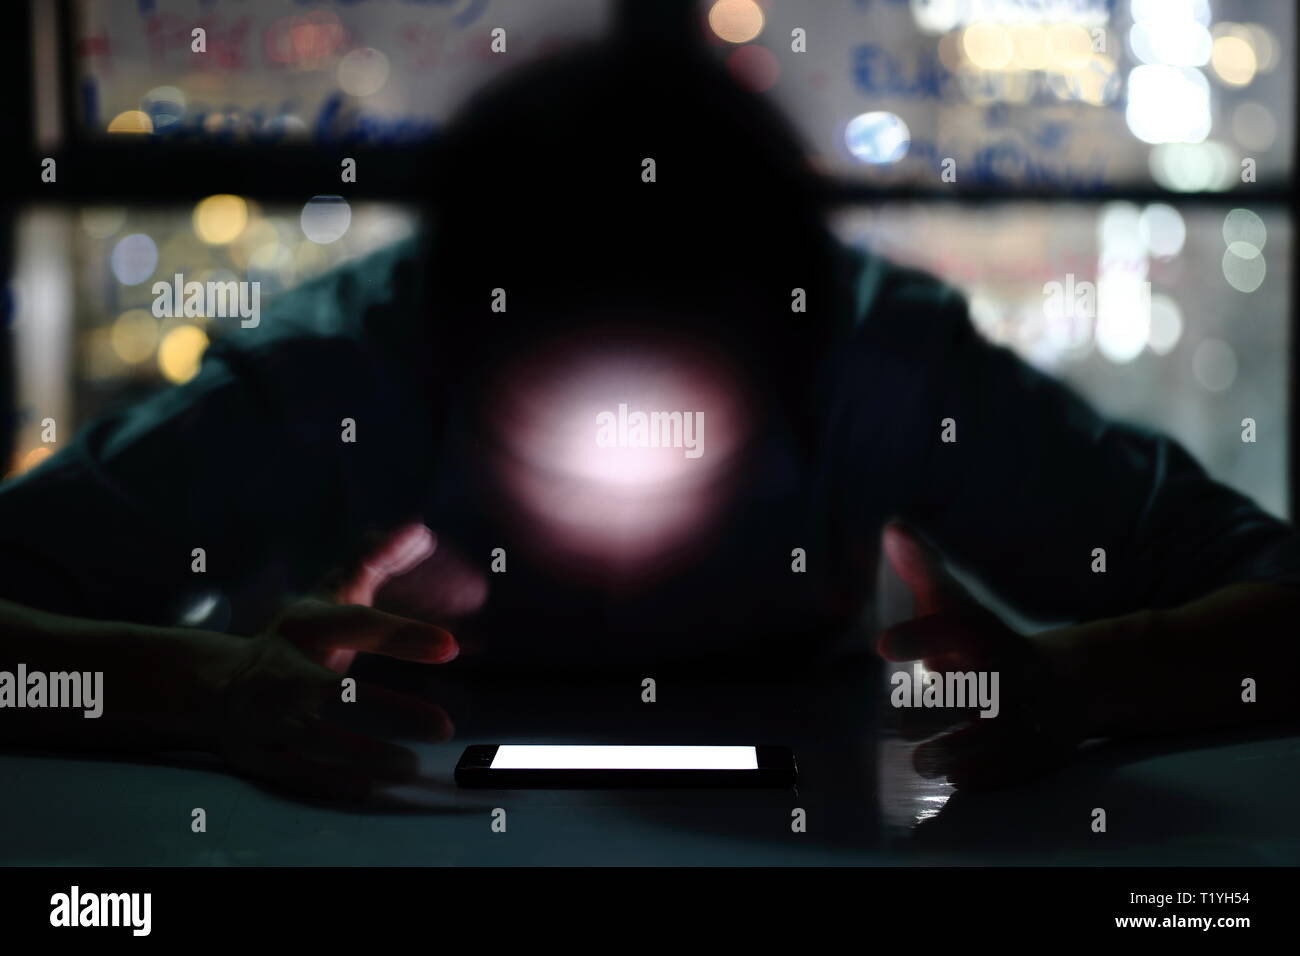 smartphone addiction depression. blur motion face of Man looking at mobile phone in a room. night light of city skyline bokeh outside of the window. m - Stock Image